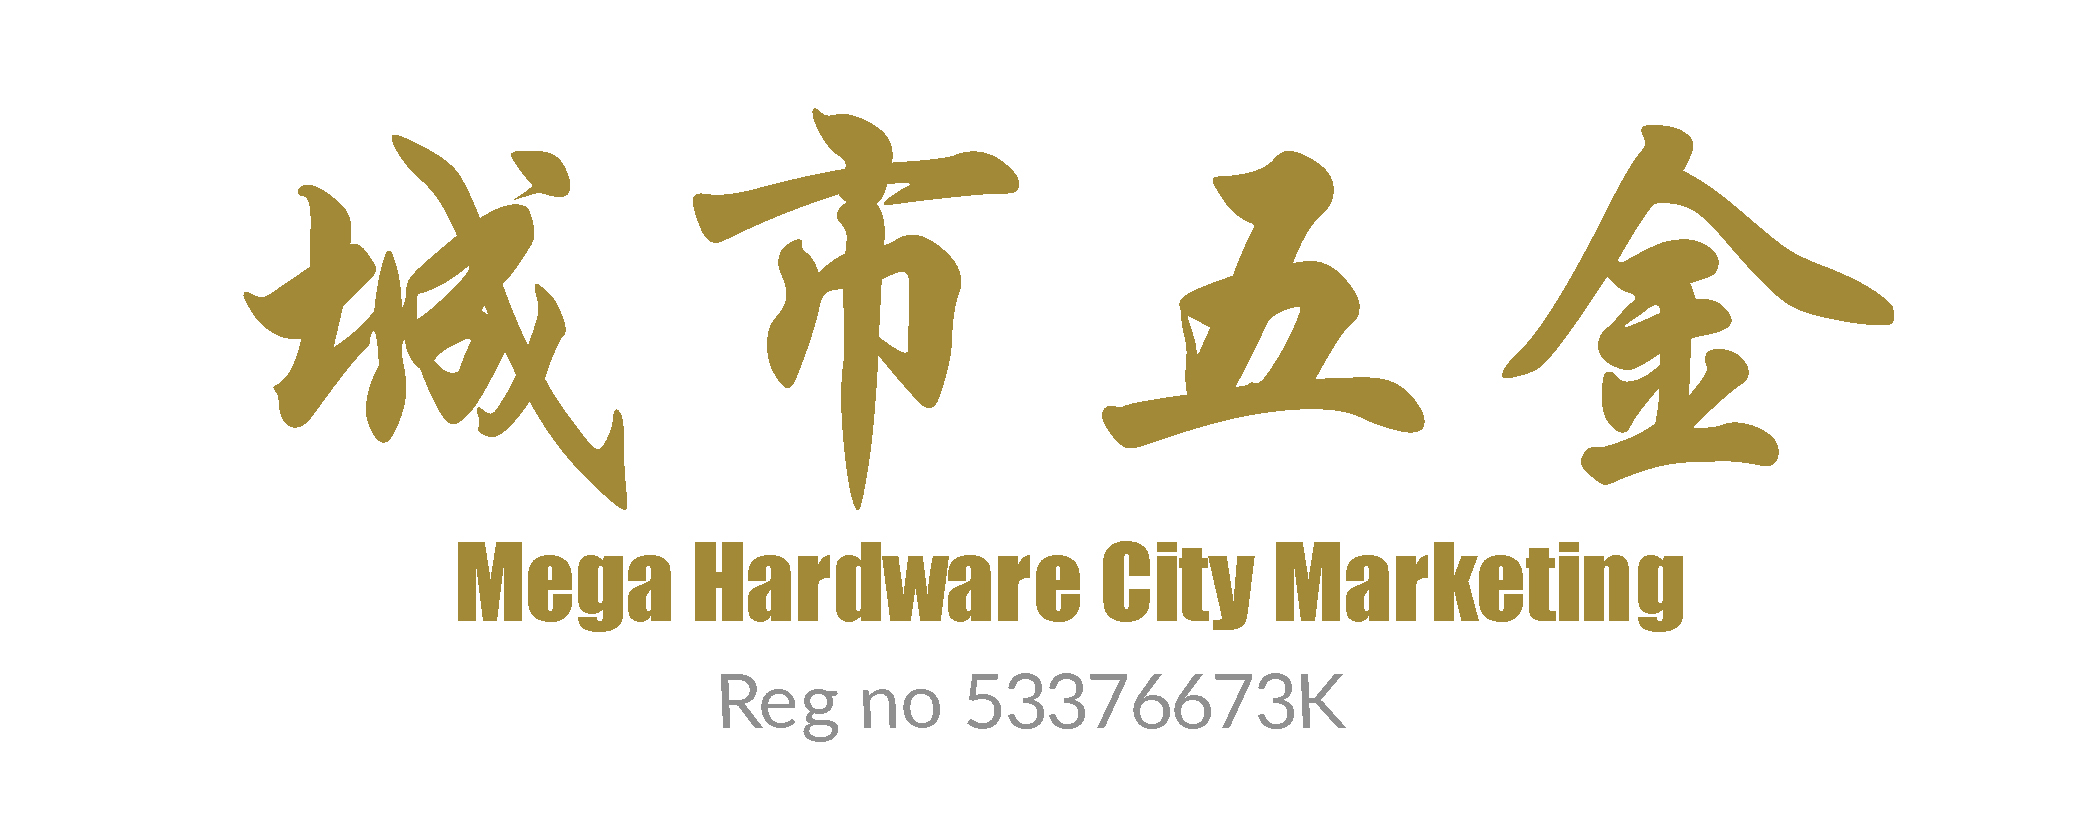 Hardwarestore – Mega Hardware City Marketing